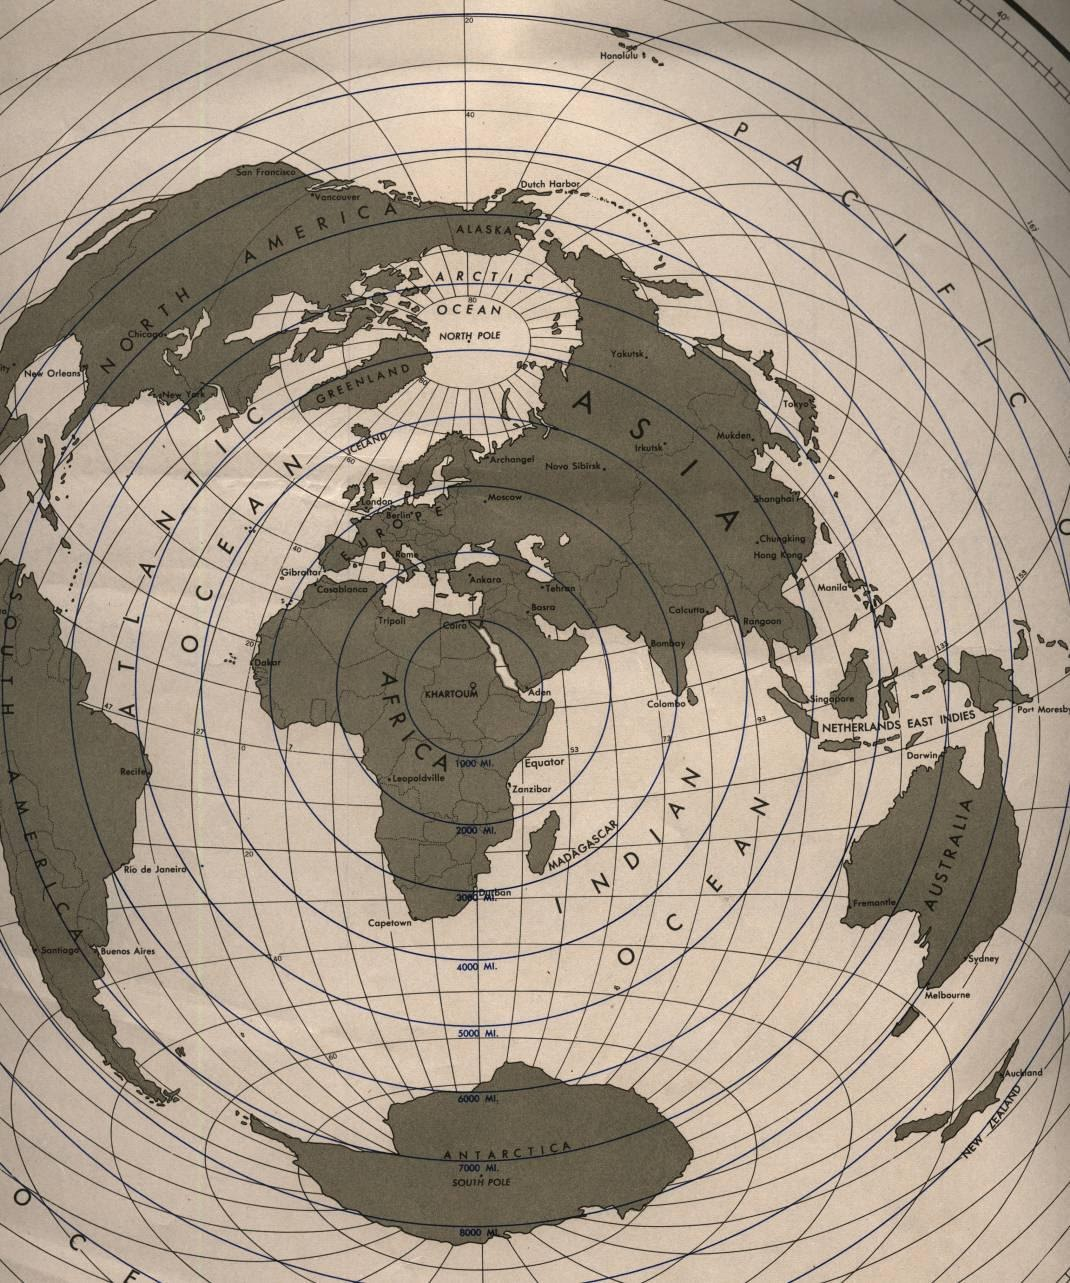 Expedition earth different map projections of the world world map projection khartoum africa centered gumiabroncs Choice Image